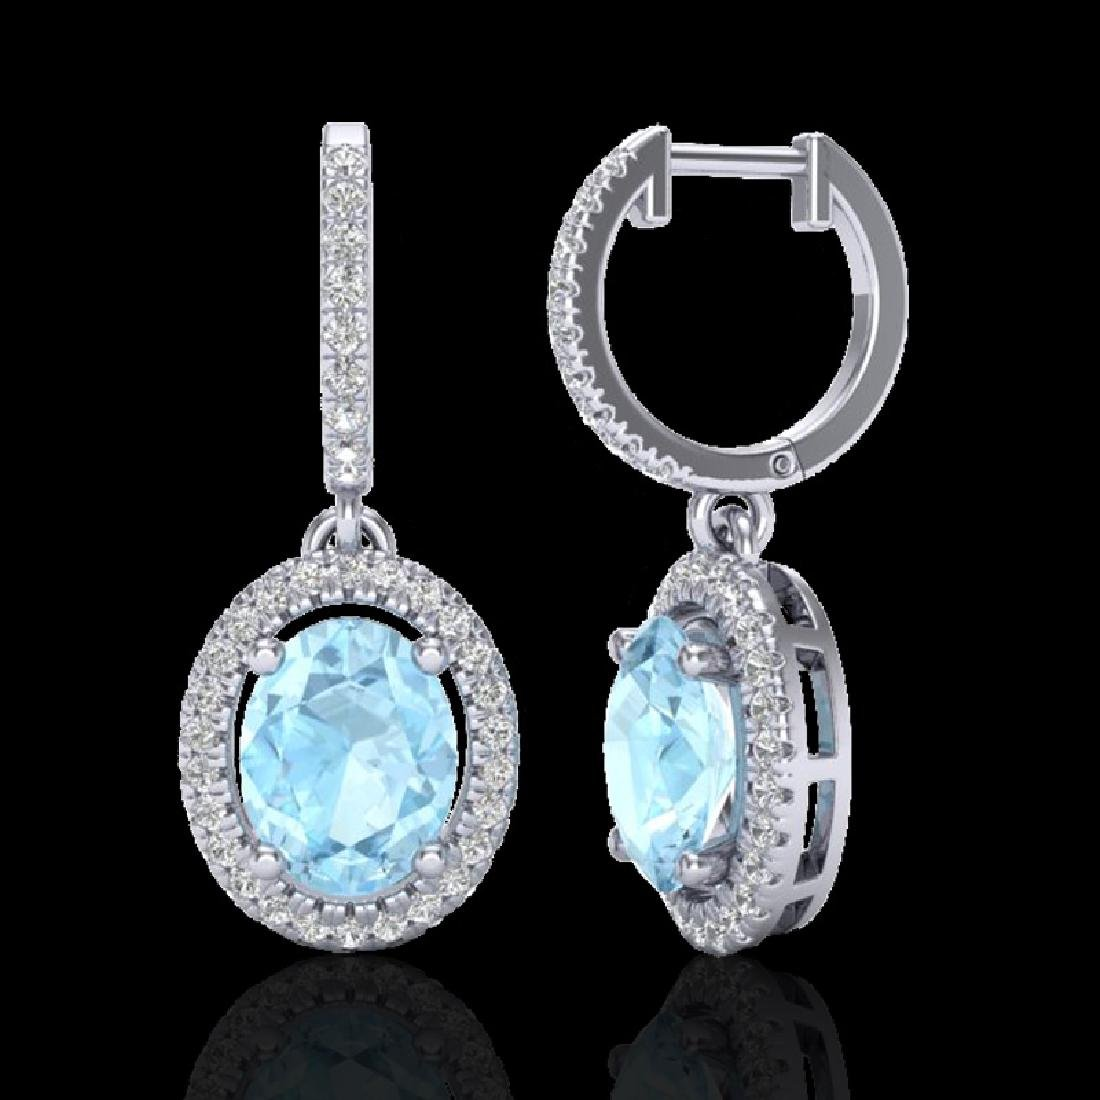 3.25 CTW Aquamarine & Micro Pave VS/SI Diamond Earrings - 2